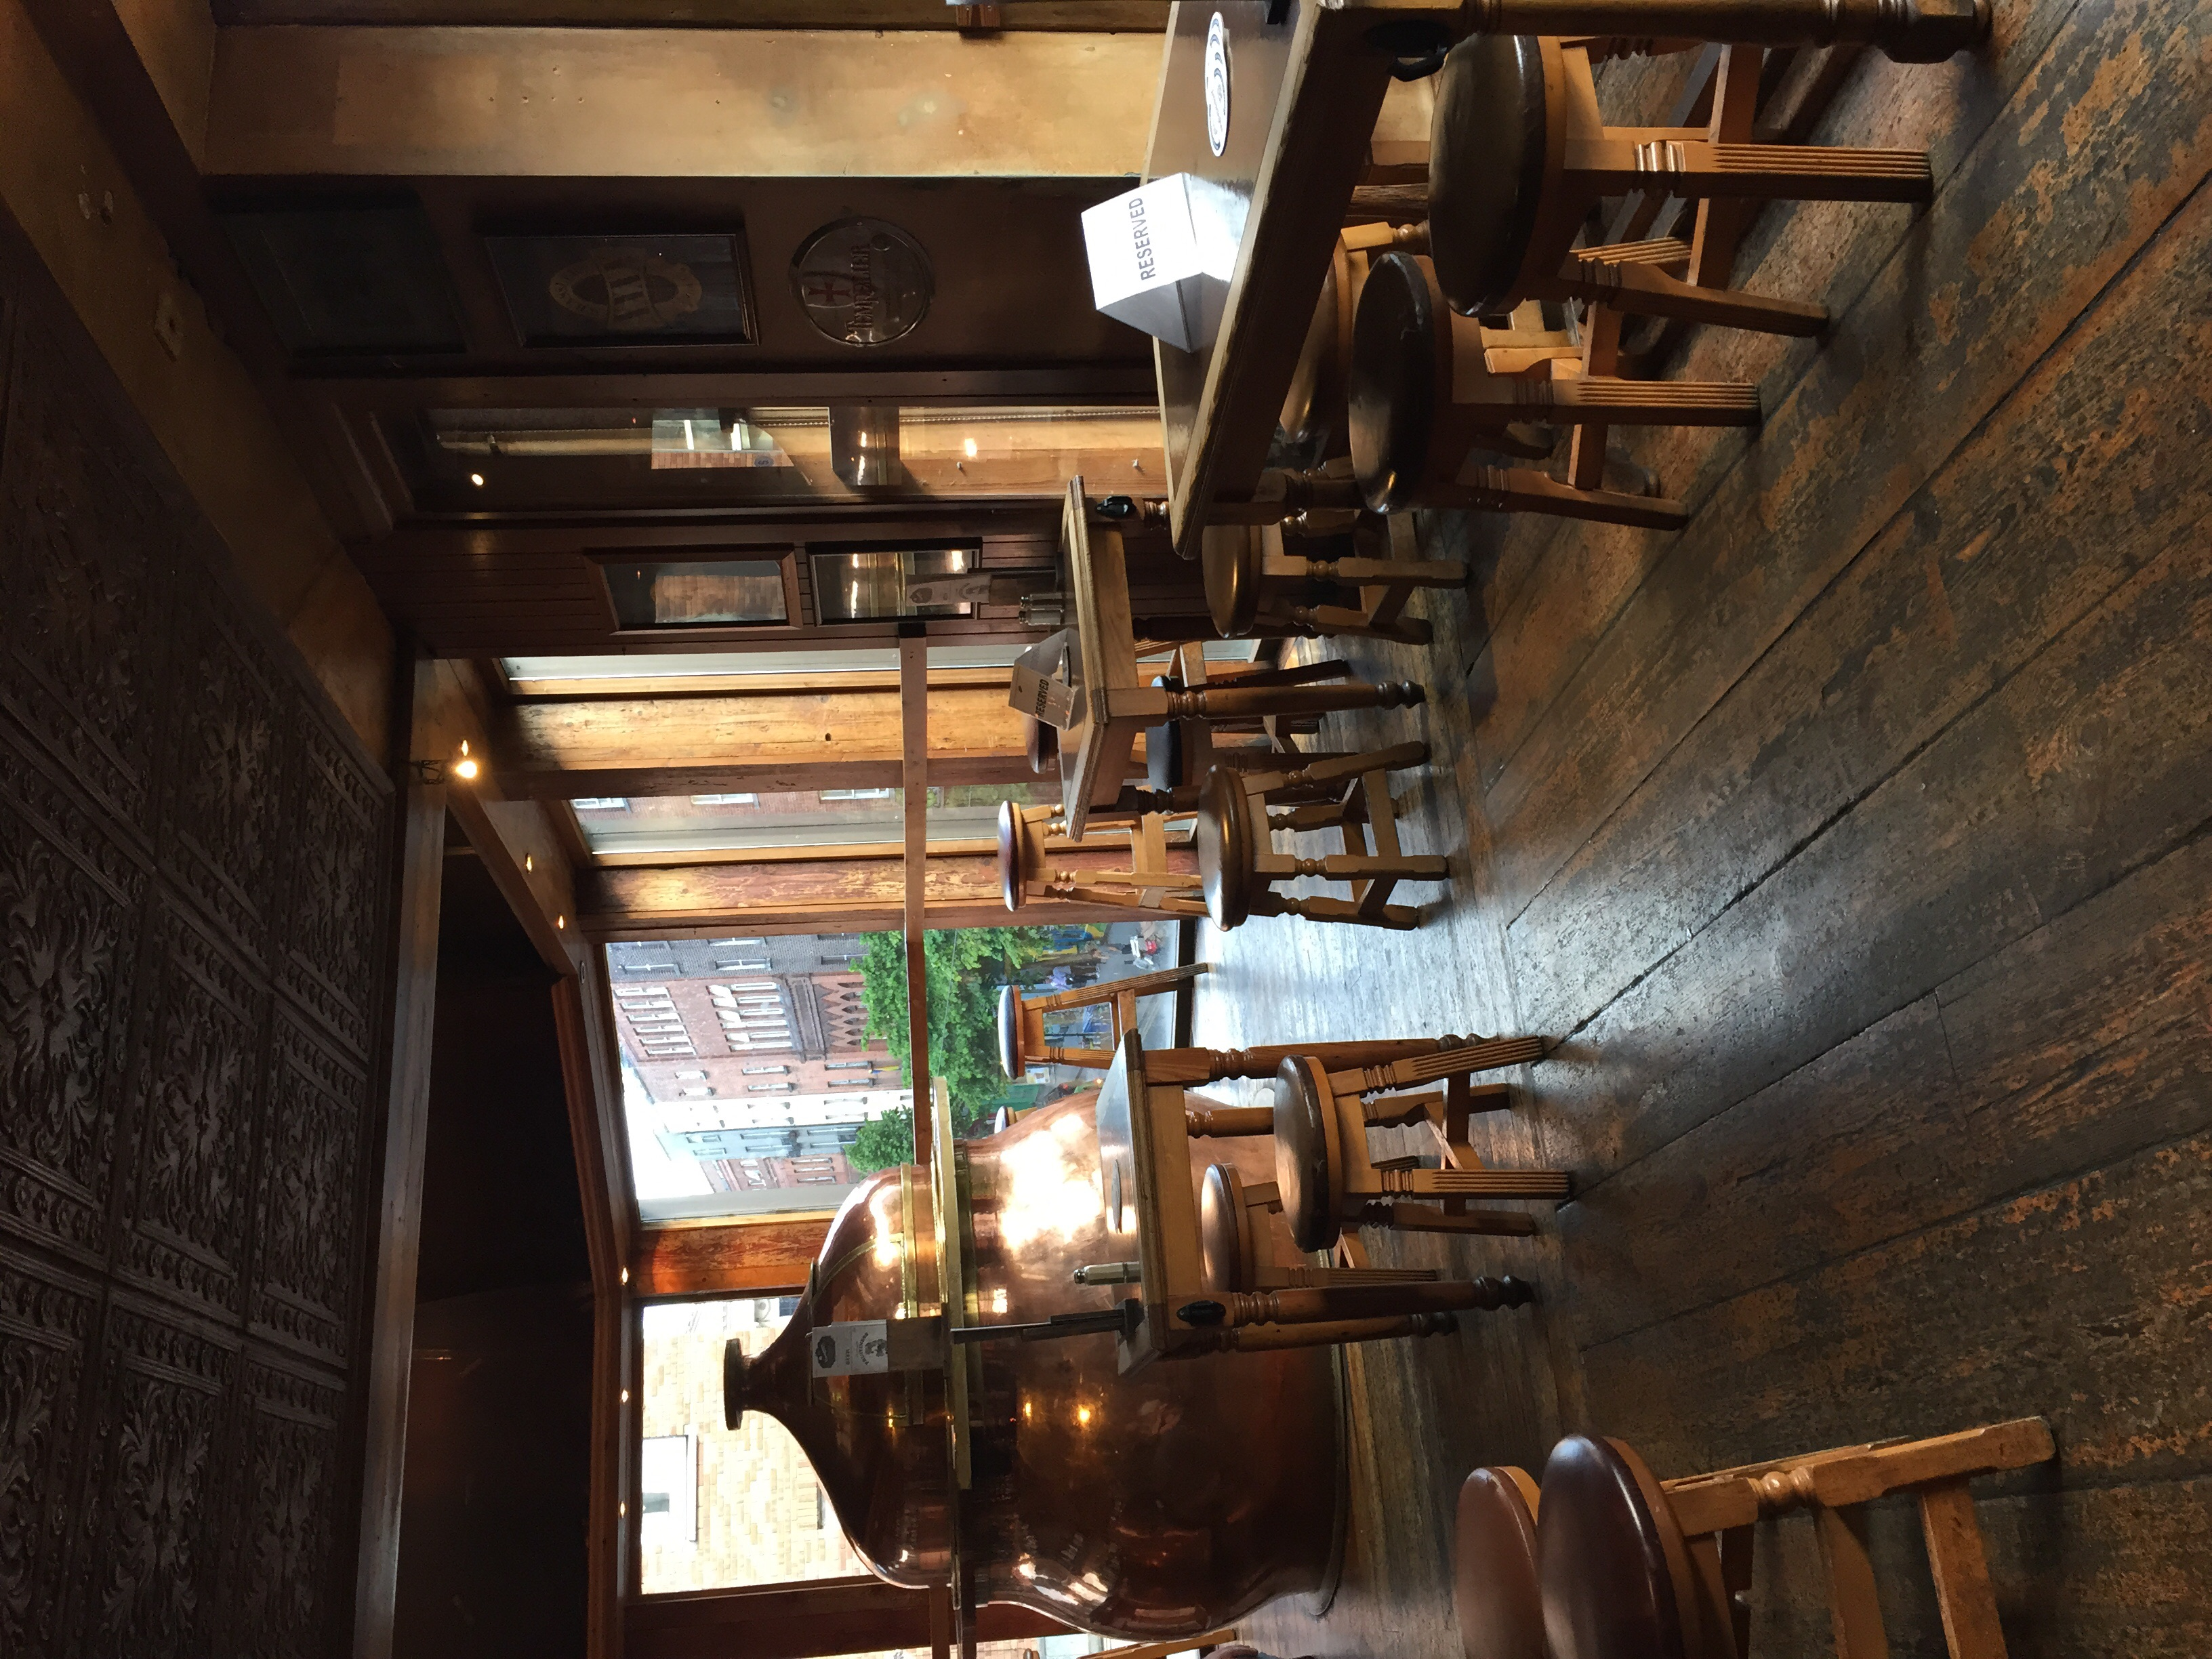 Loved the copper mash tun as a bar table.